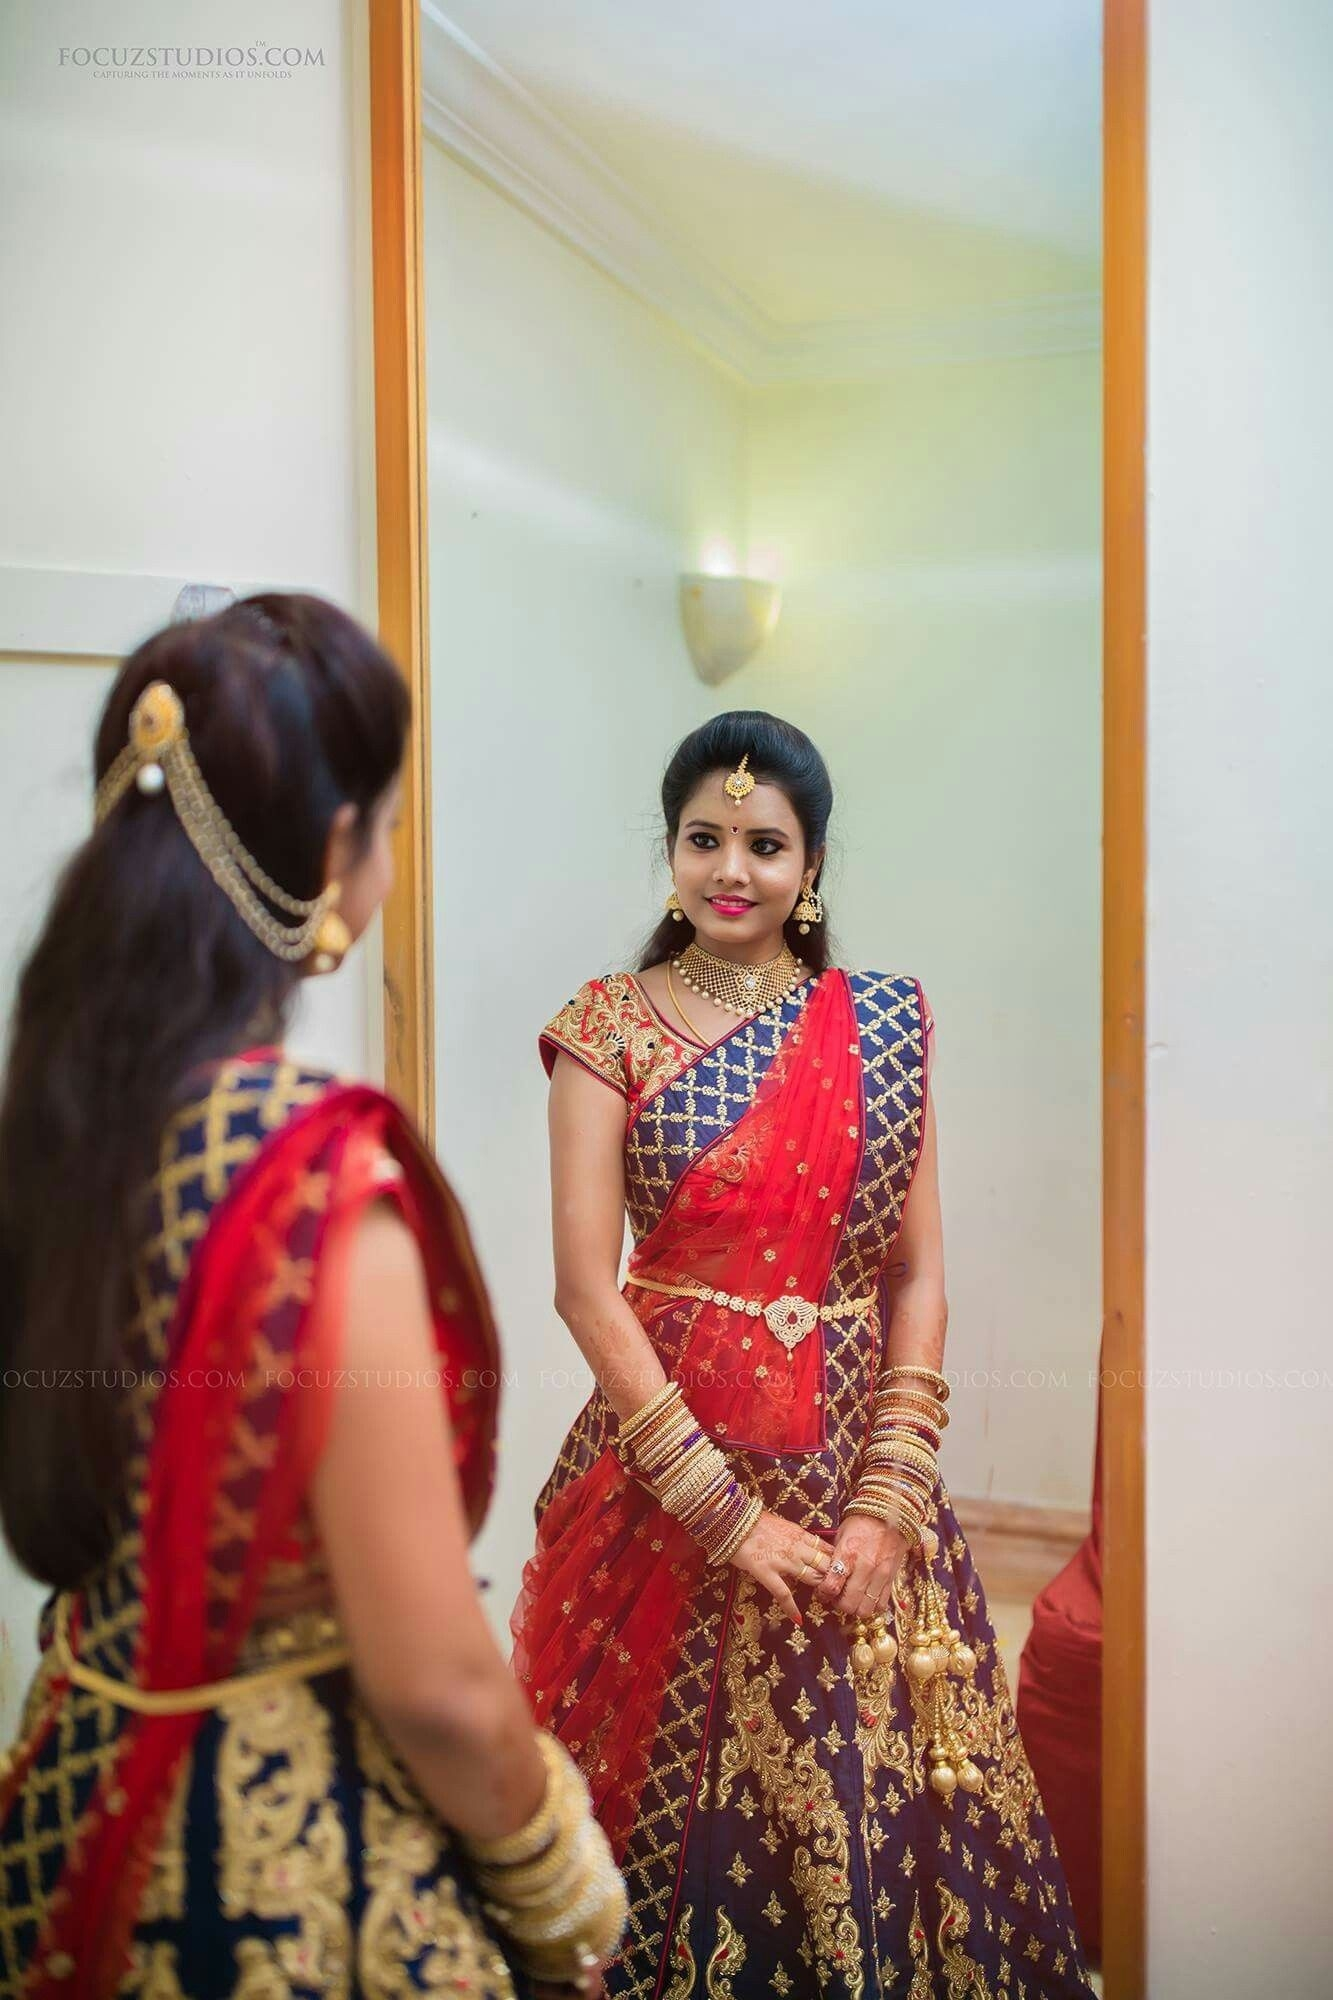 Hair Style   Hairstyles In 2019   Indian Bridal Lehenga intended for South Indian Hairstyle For Wedding Reception